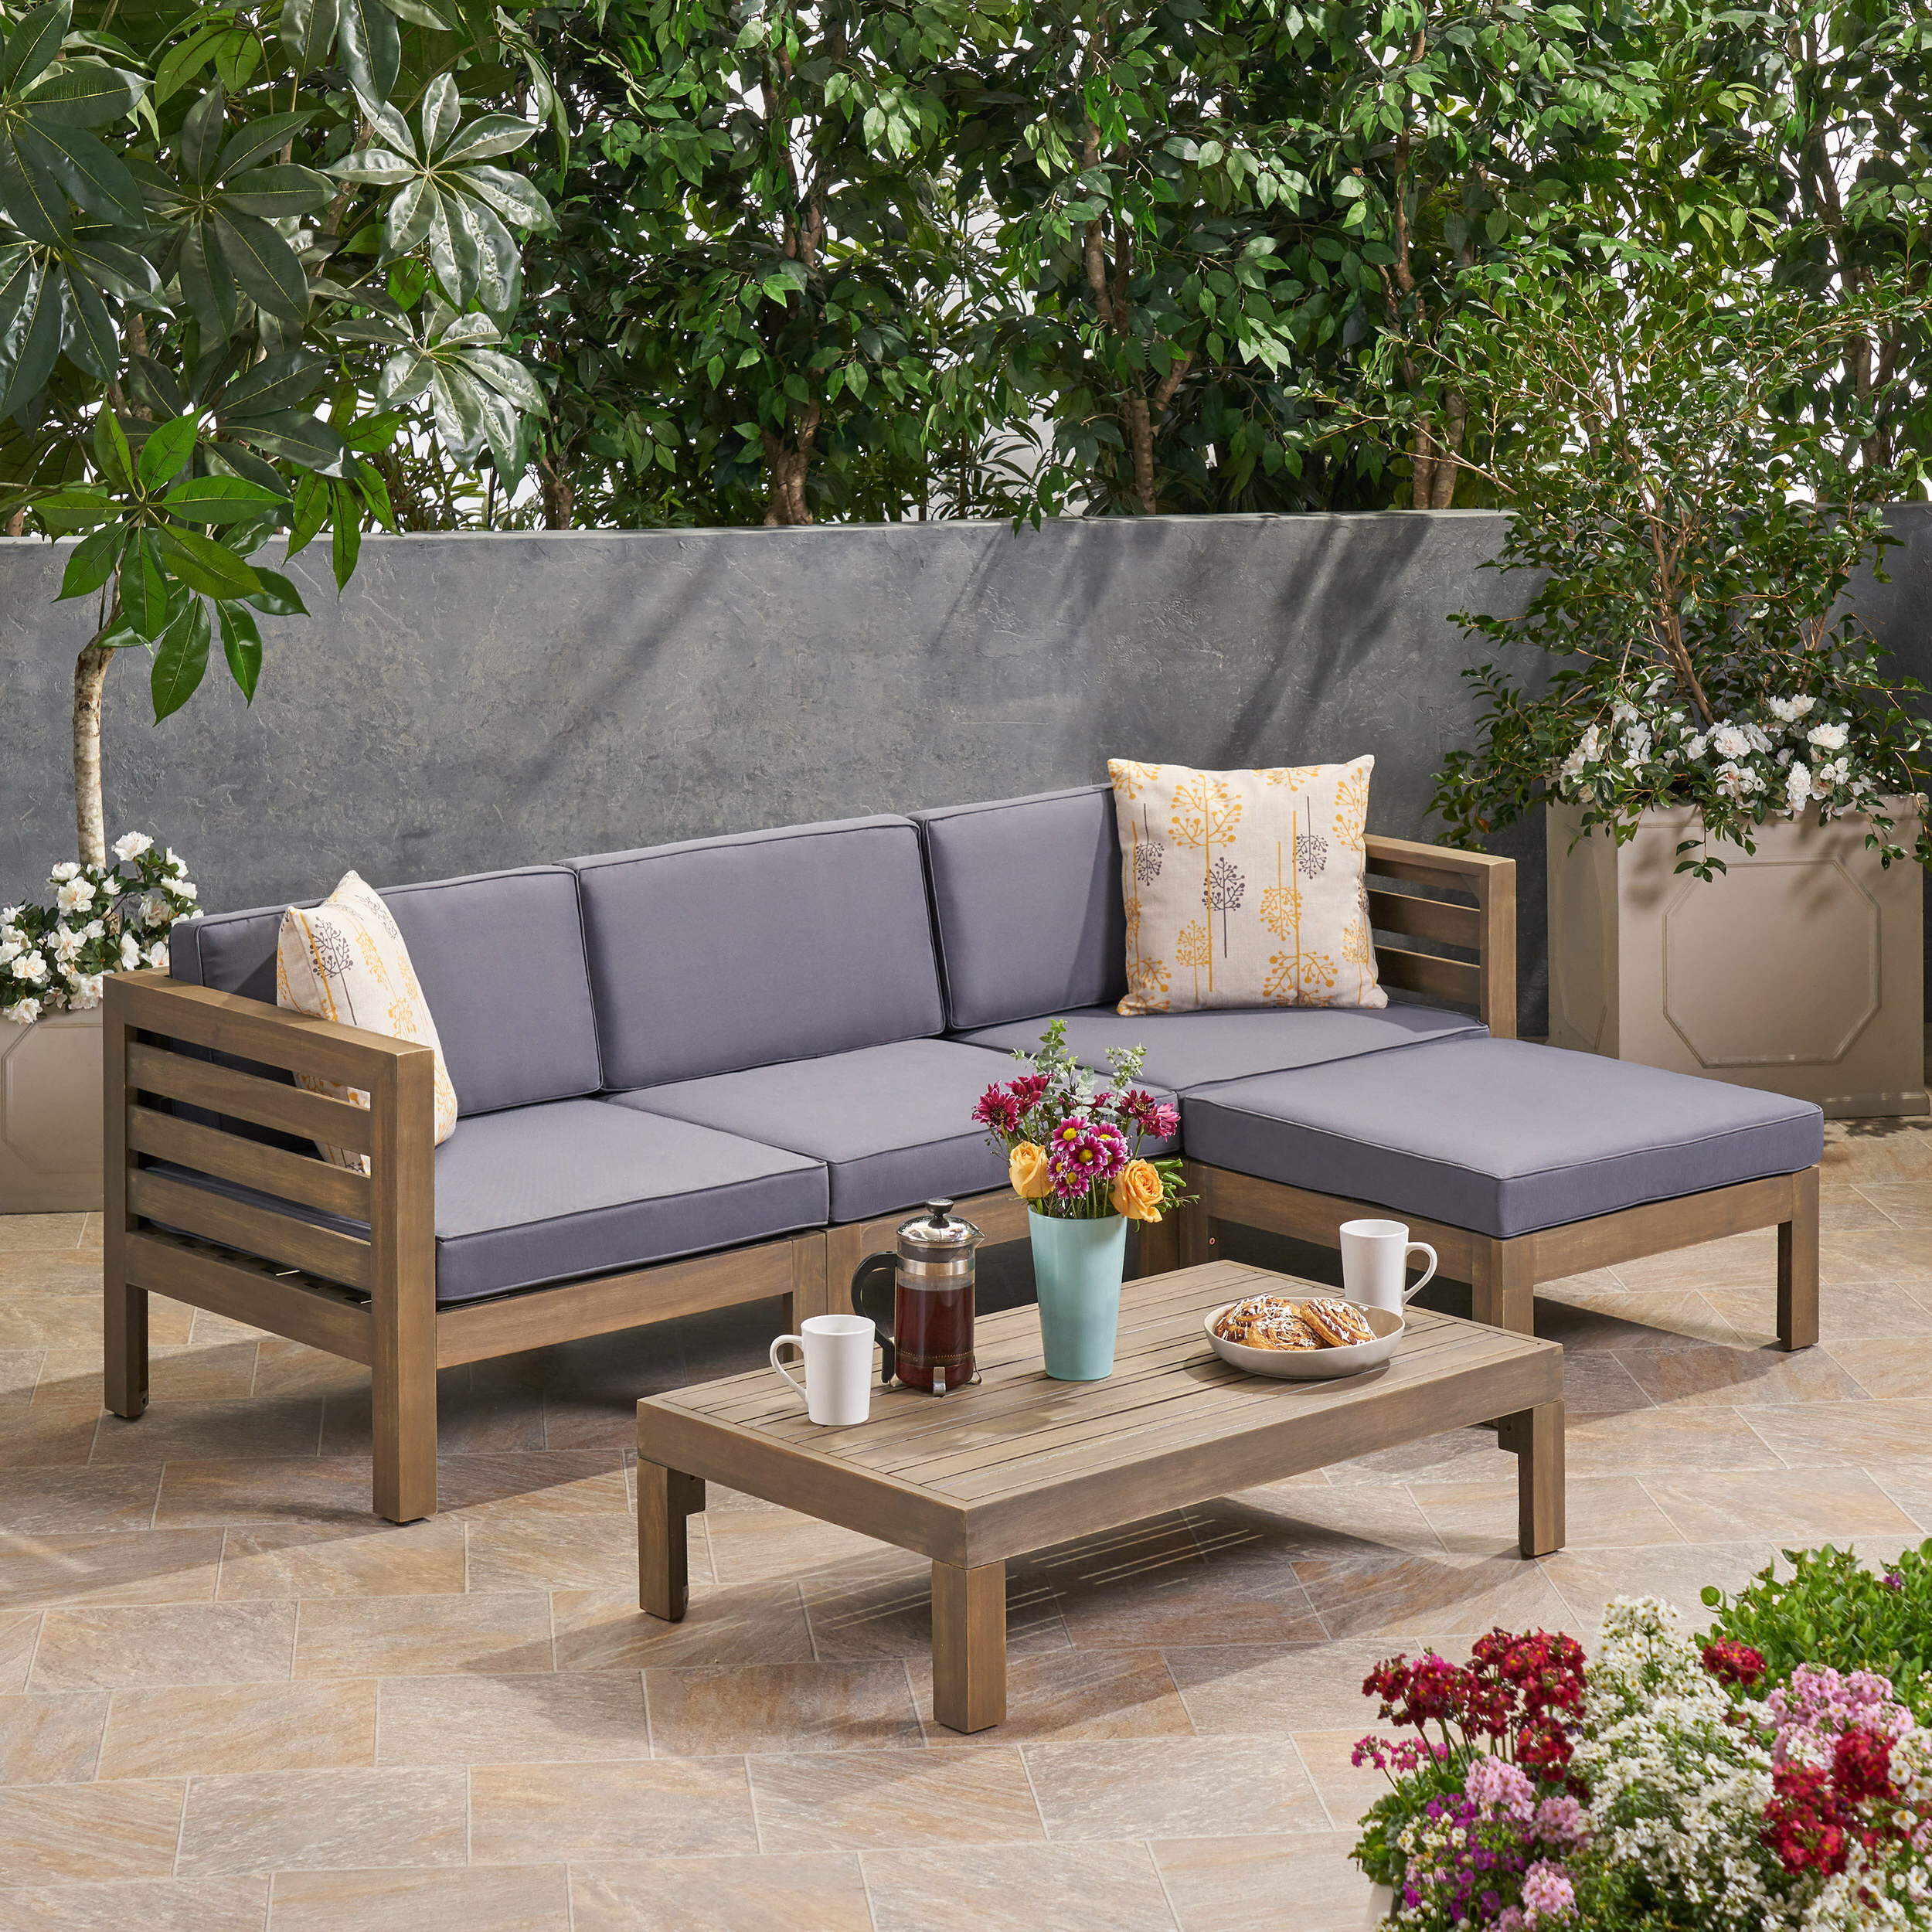 Olinda 4 Piece Teak Sectionals Seating Group With Cushions Throughout Latest Dwayne Outdoor 5 Piece Sectional Seating Group With Cushions (View 22 of 25)